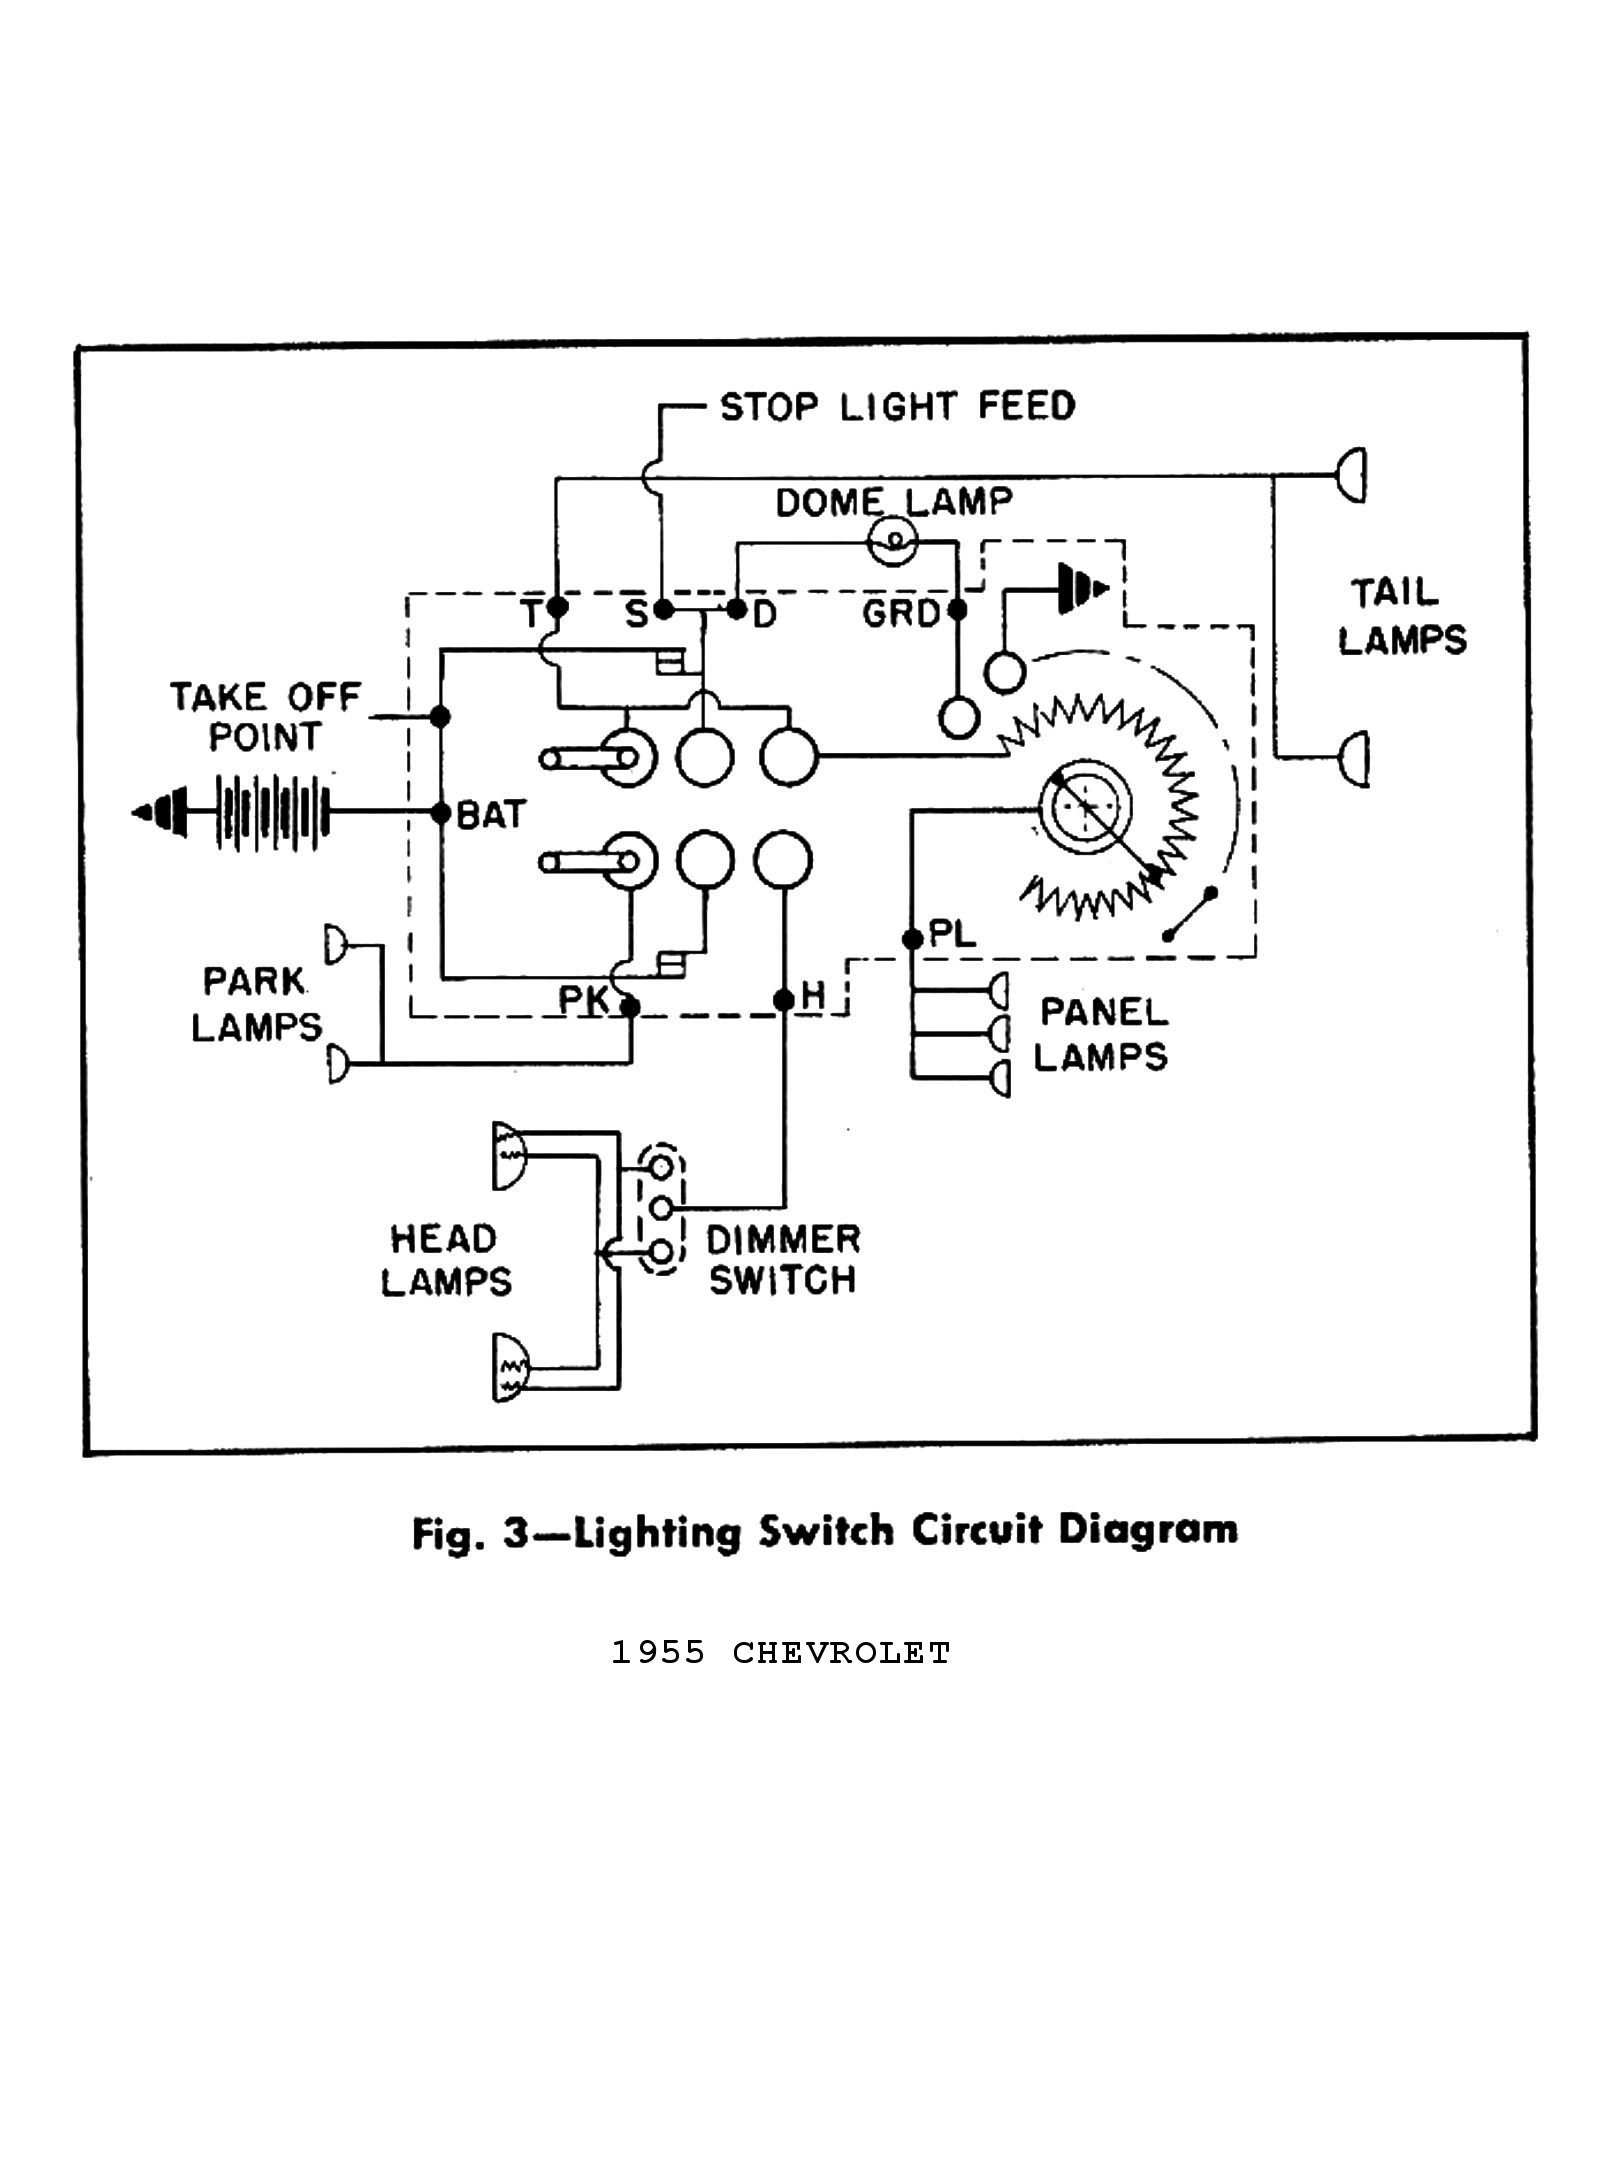 1957 chevy wiring lights wiring diagram schematics problems chevy truck lamp 1957 chevy wiring lights wiring diagram schemes 1957 chevy dash wiring 1957 chevy wiring lights